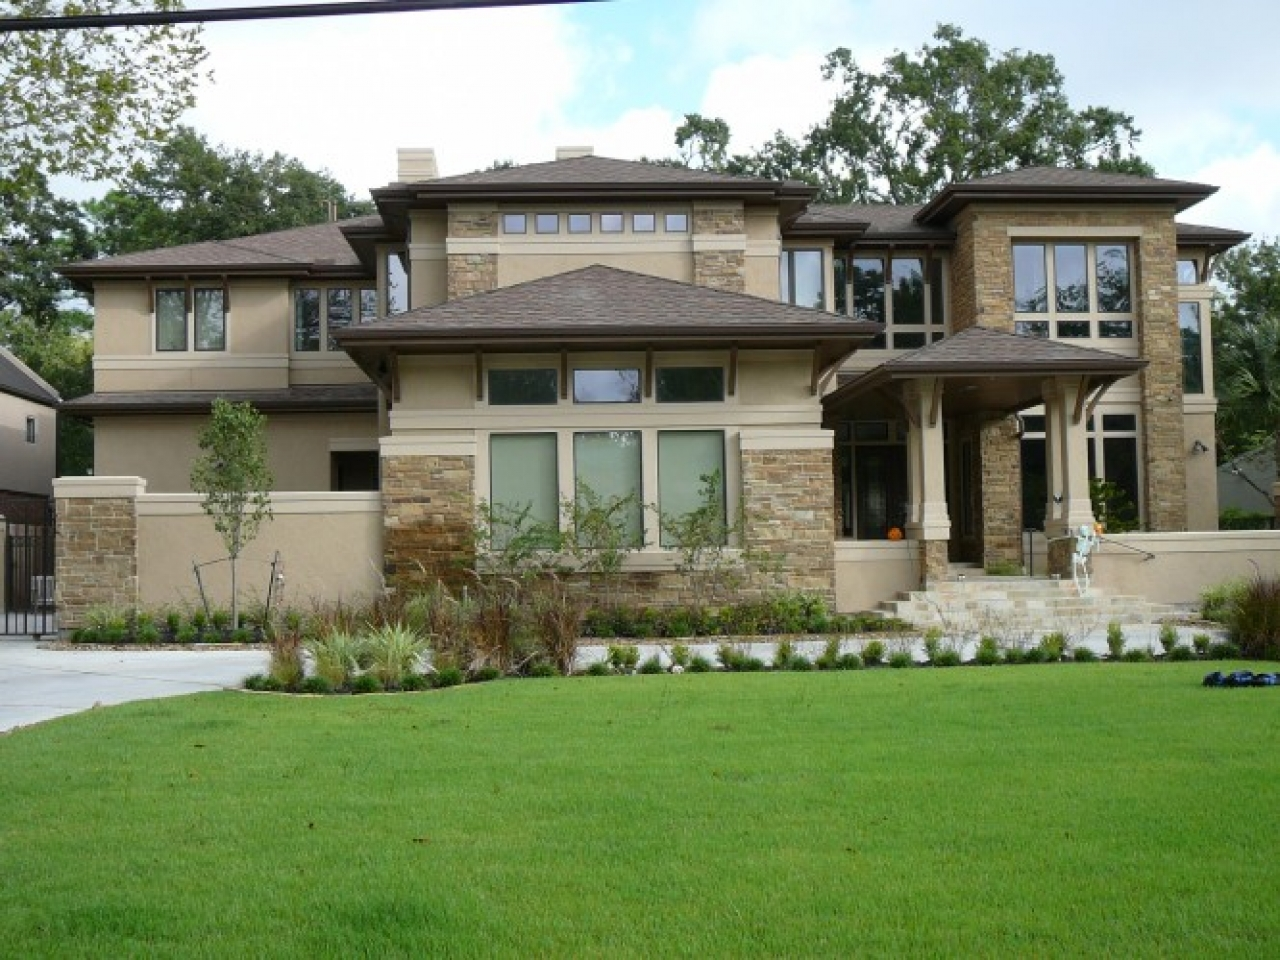 Urban craftsman style home contemporary craftsman style for Craftsman builders